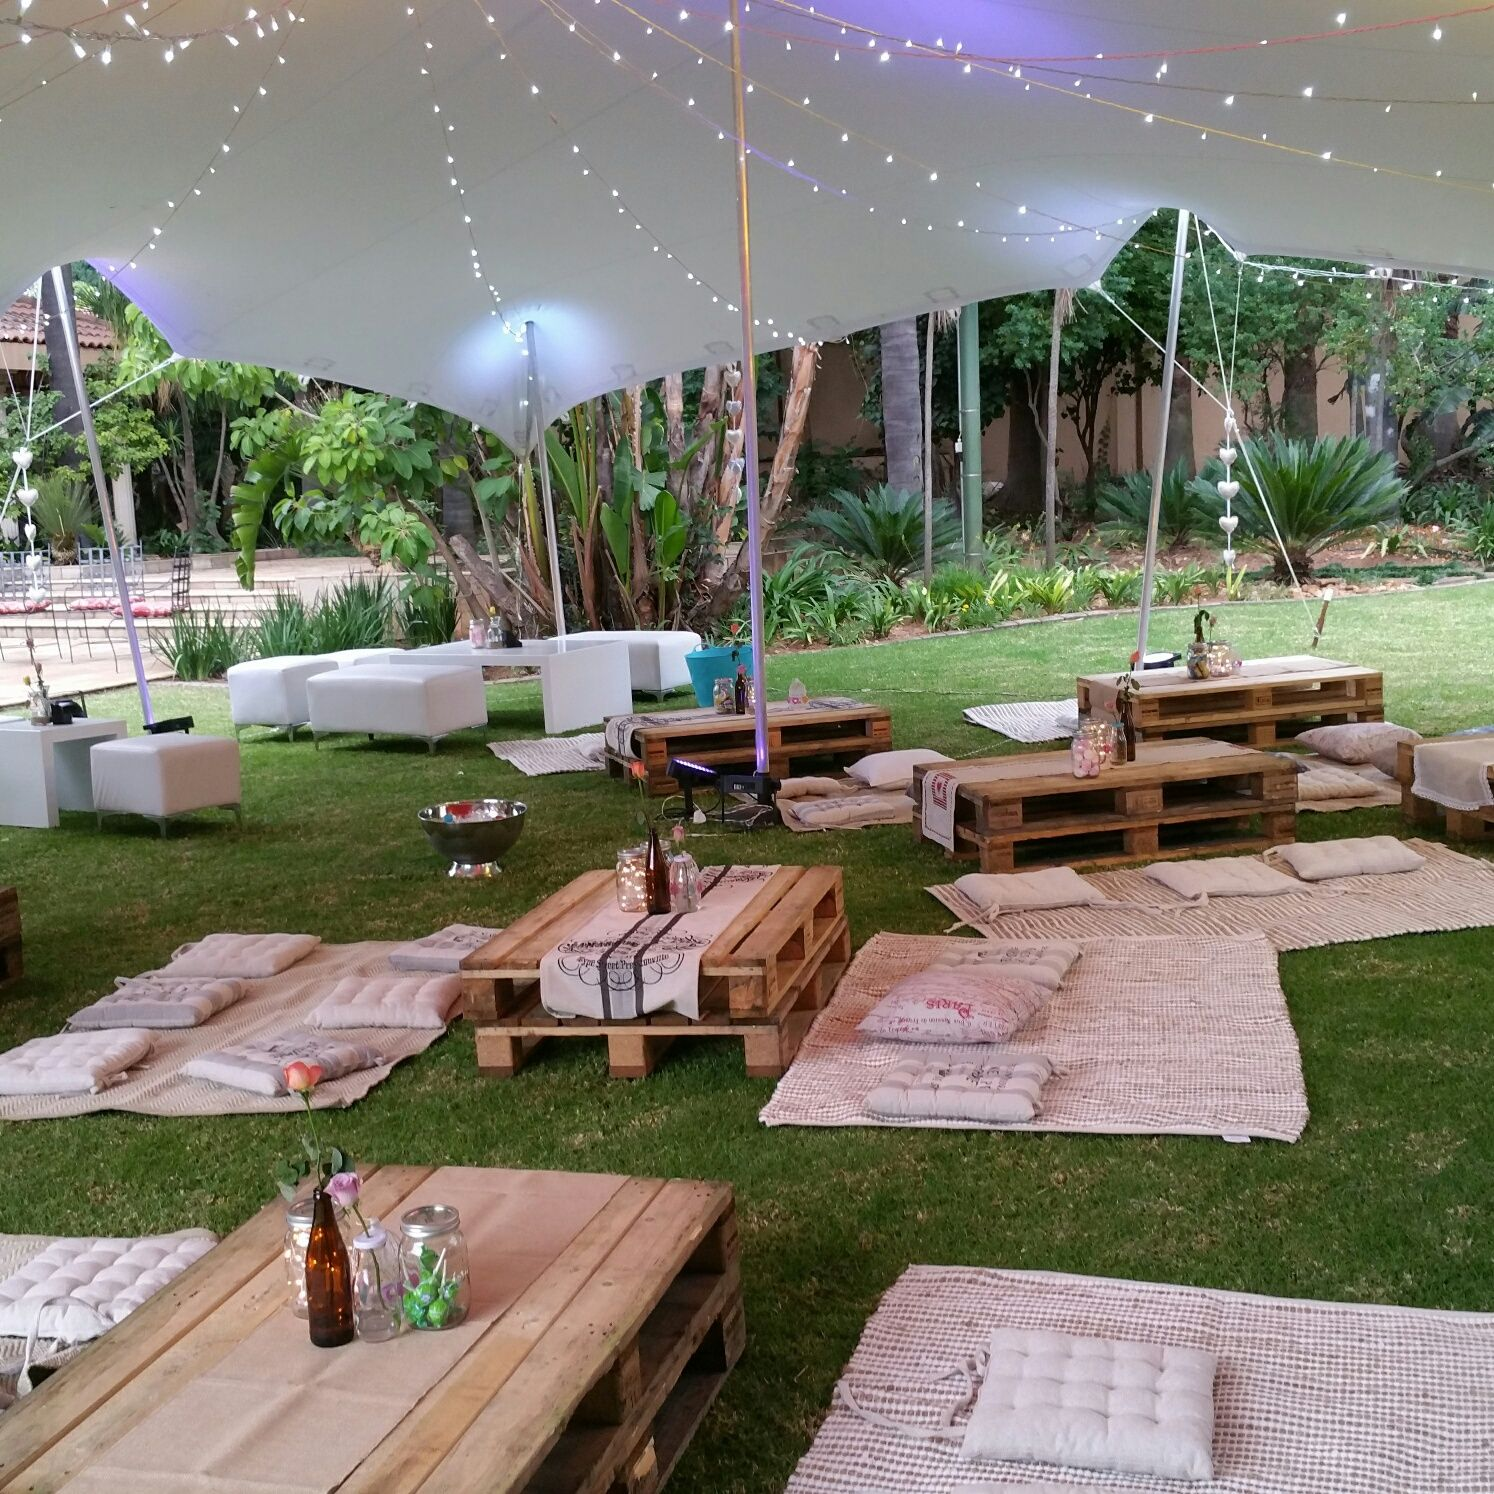 festival decor ideas - Google Search  Summer party decorations